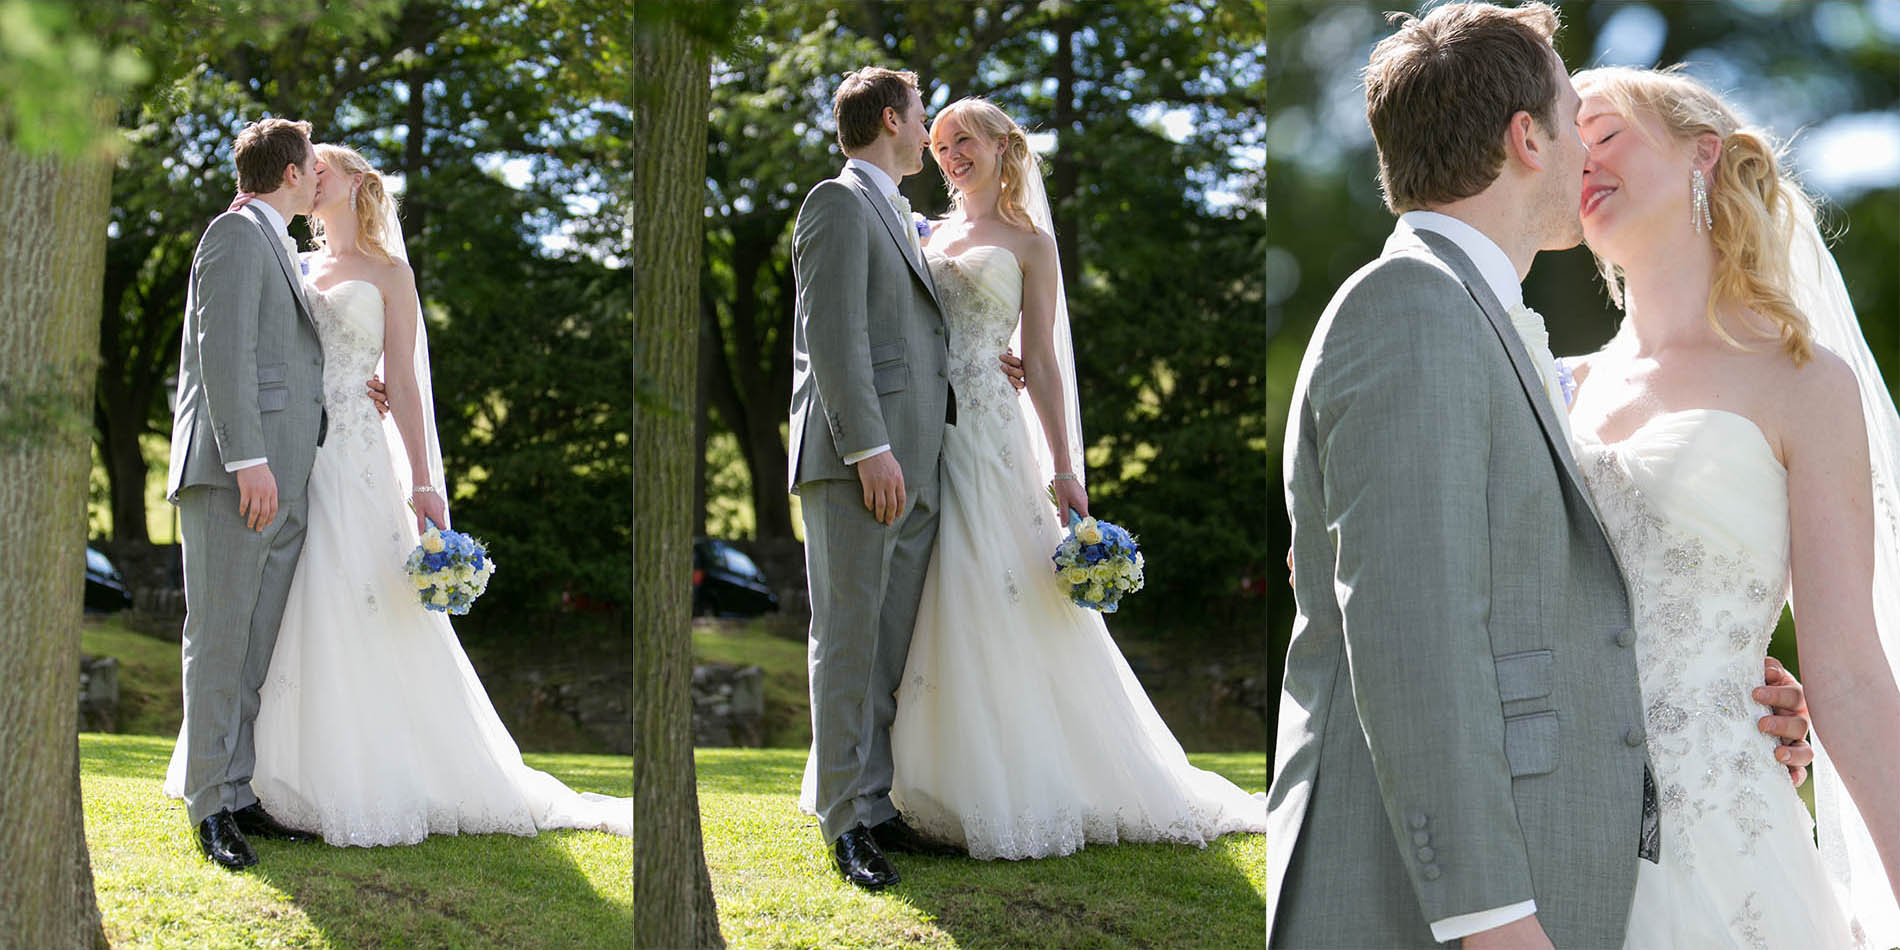 natural wedding photography in derbyshire